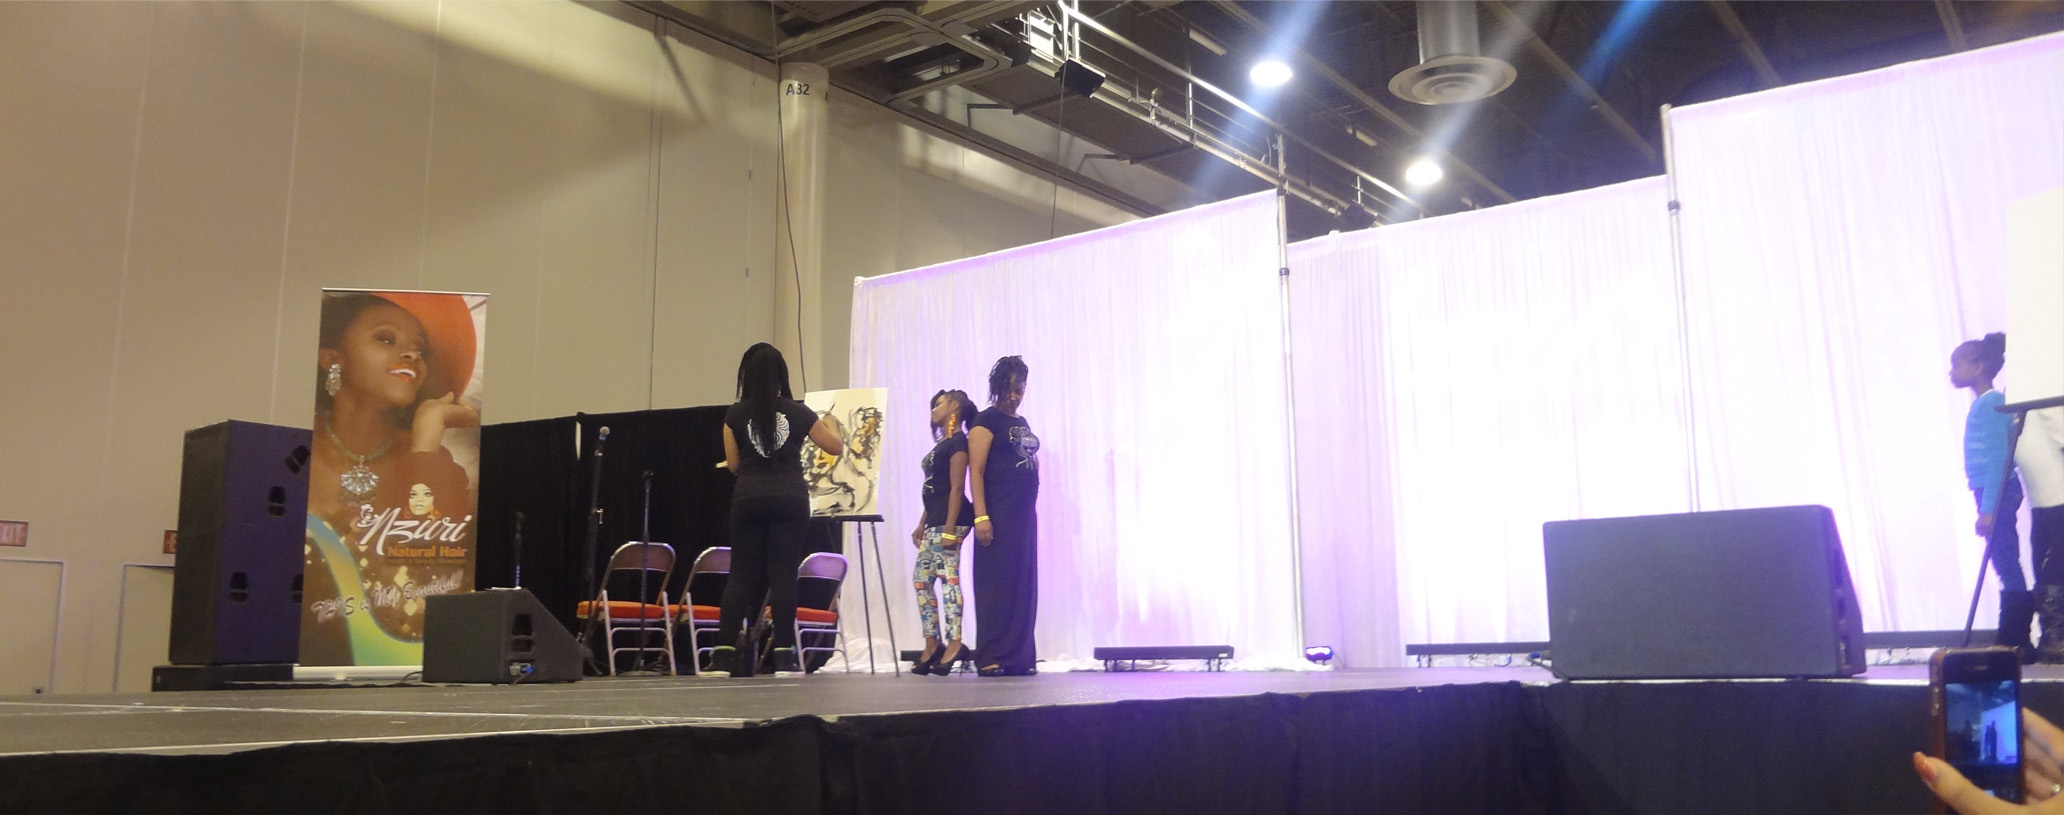 On stage at the nzuri hair show.jpg